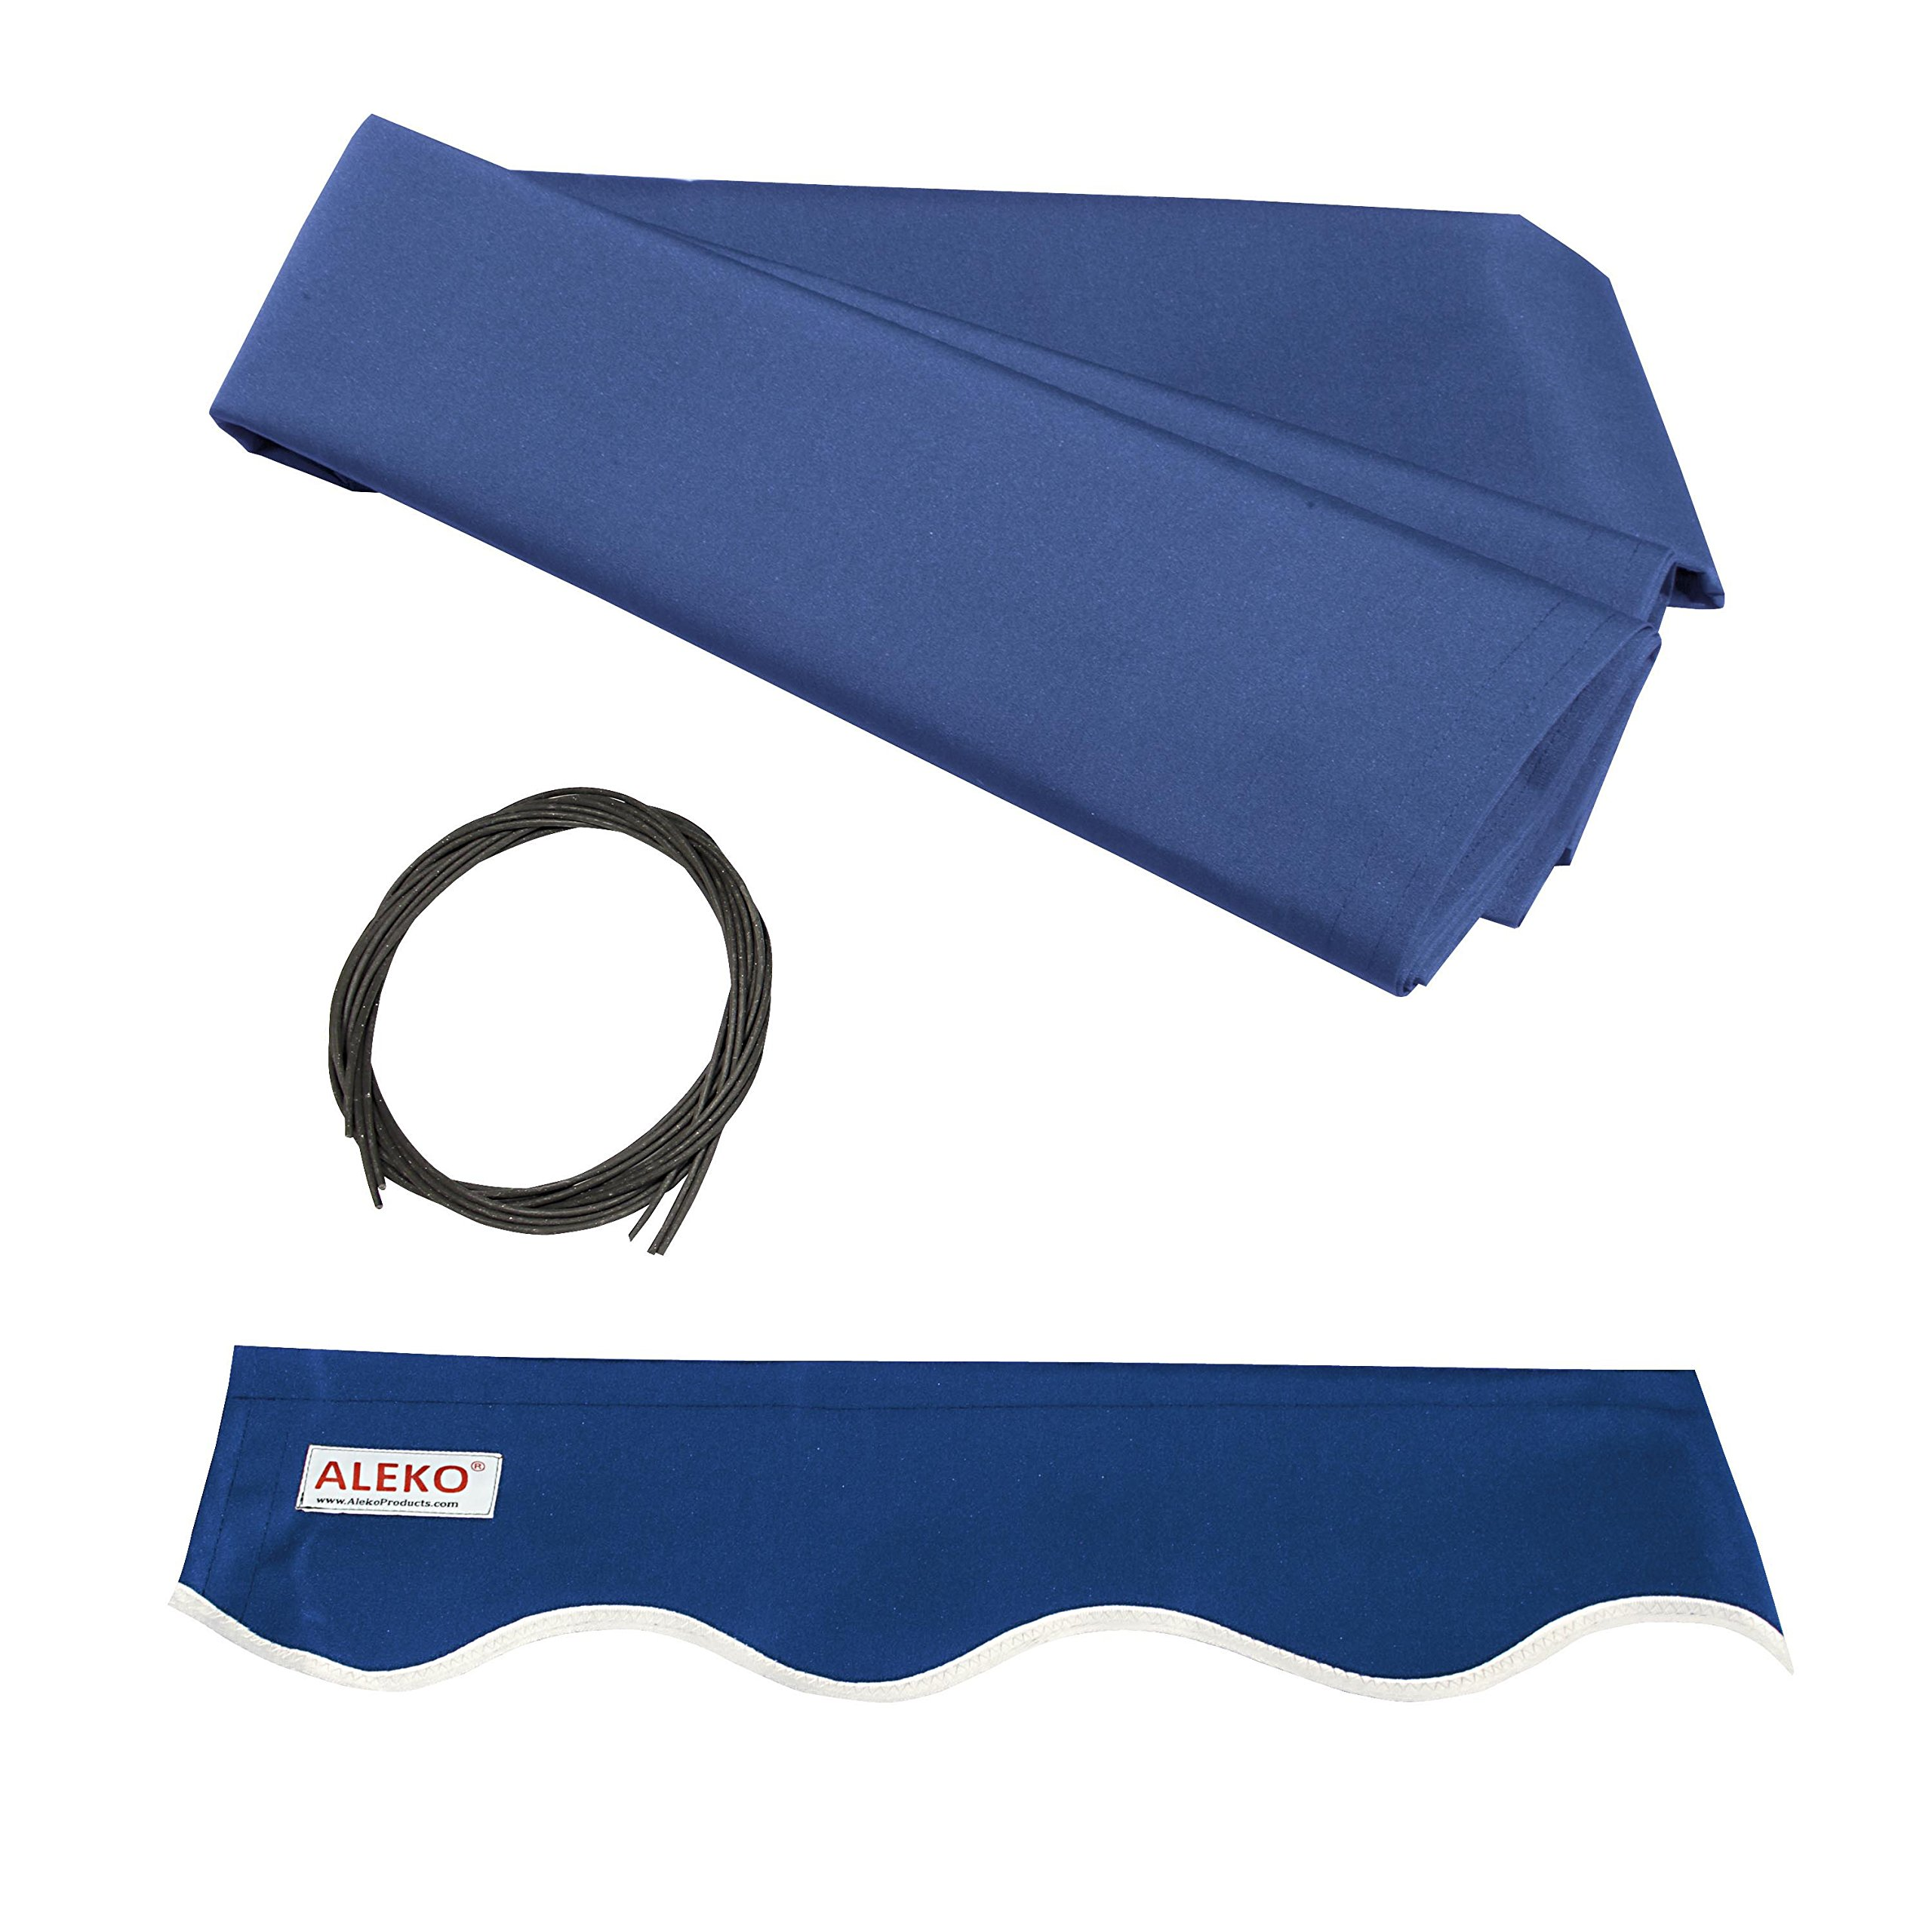 ALEKO FAB20X10BLUE30 Retractable Awning Fabric Replacement 20 x 10 Feet Blue